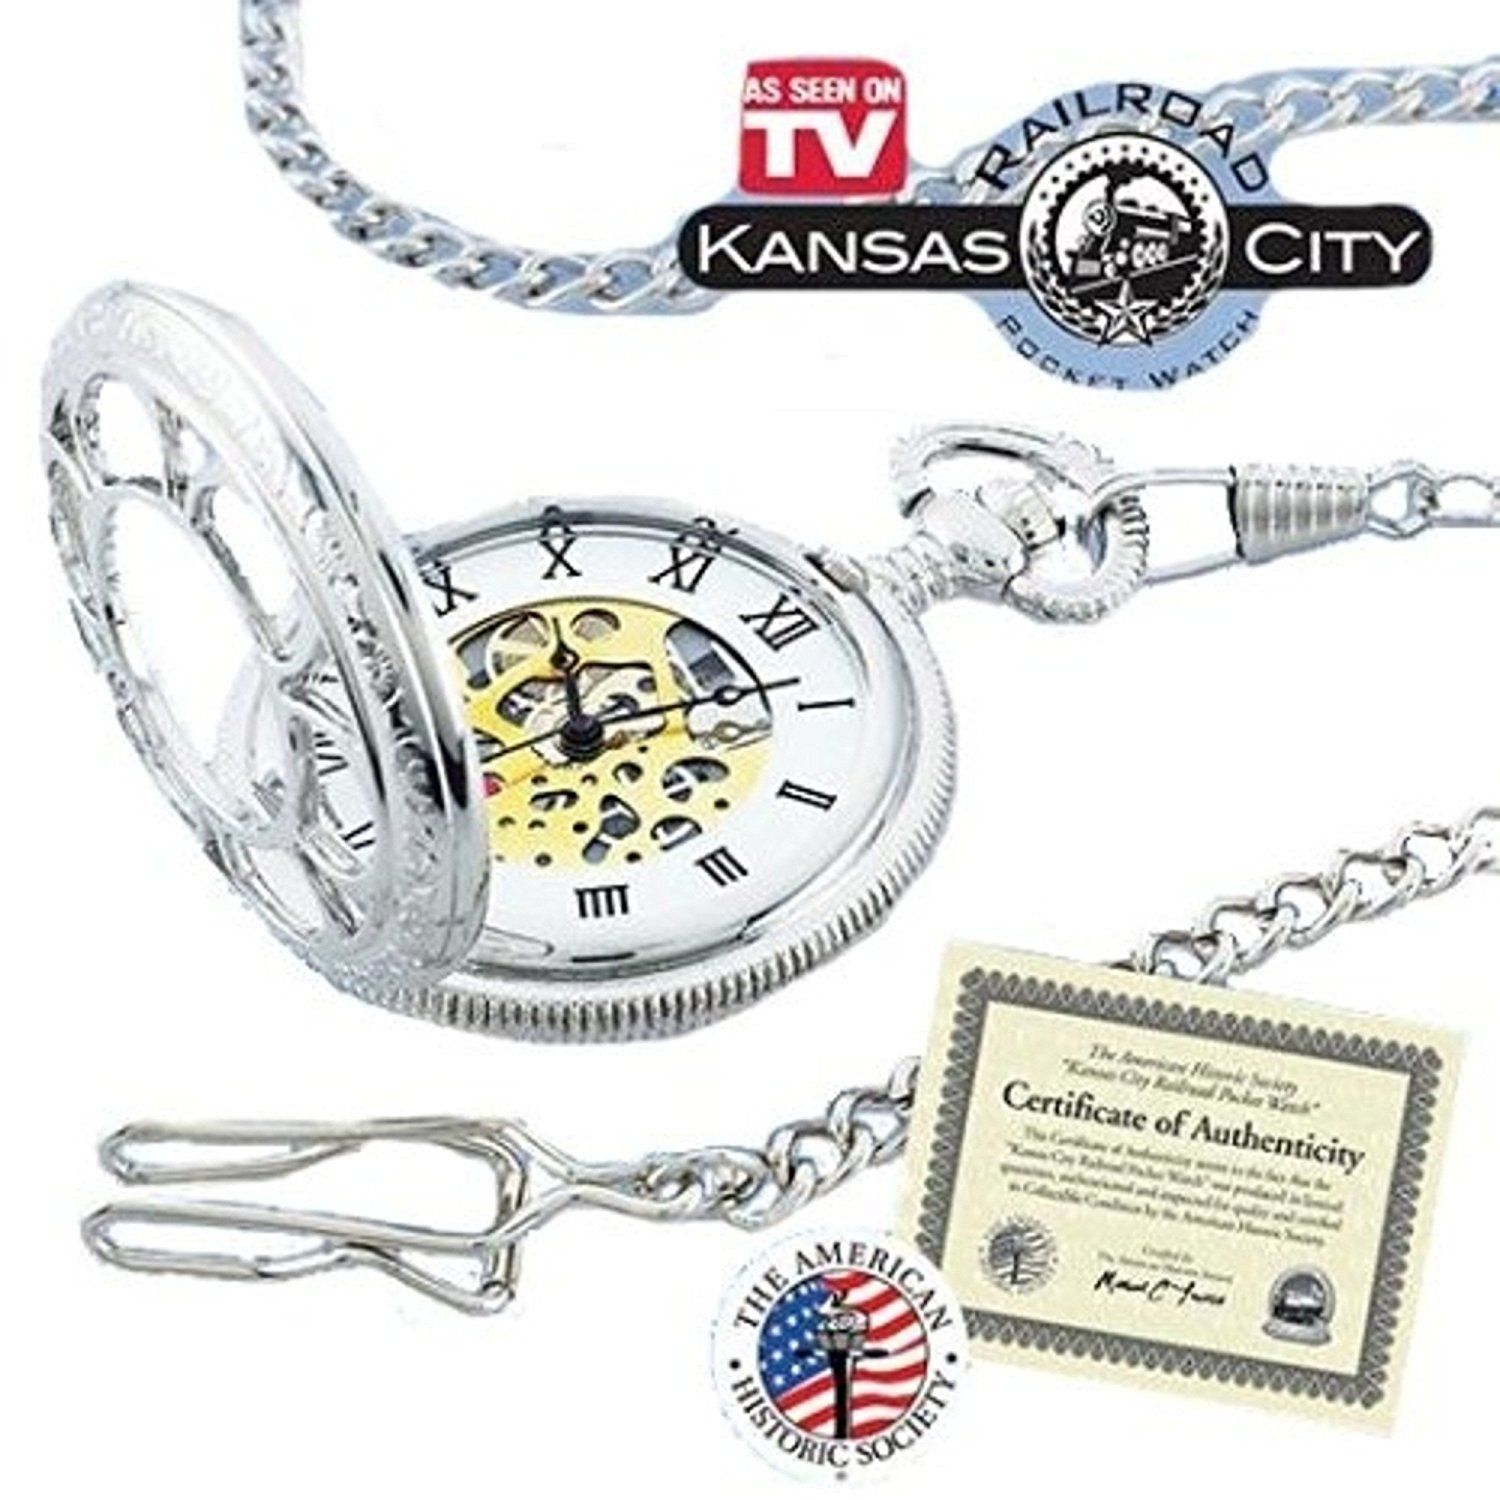 Kansas City Railroad Pocket Watch- Antique Style - in Silver Tone with Butterfly Hinge and 26' Pocket Chain- Nostalgic Time-Piece inspired by Jesse James' Train Robbery 1874 - comes with Certificate of Authenticity (As Seen ON TV) *** Read more at the image link.